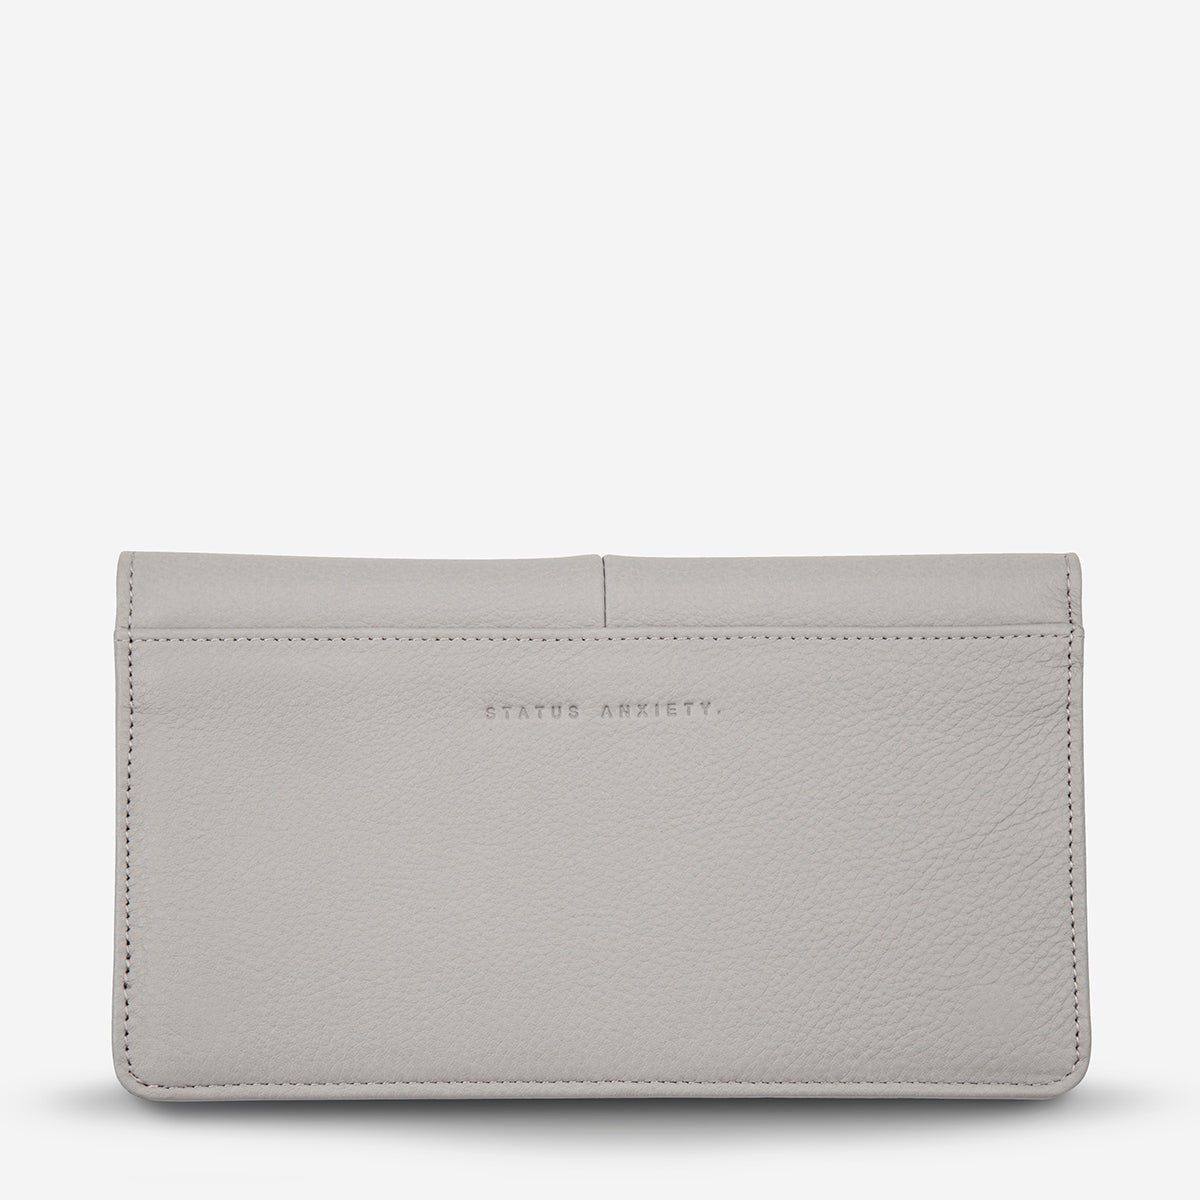 Status Anxiety Triple Threat Women's Leather Wallet - Light Grey